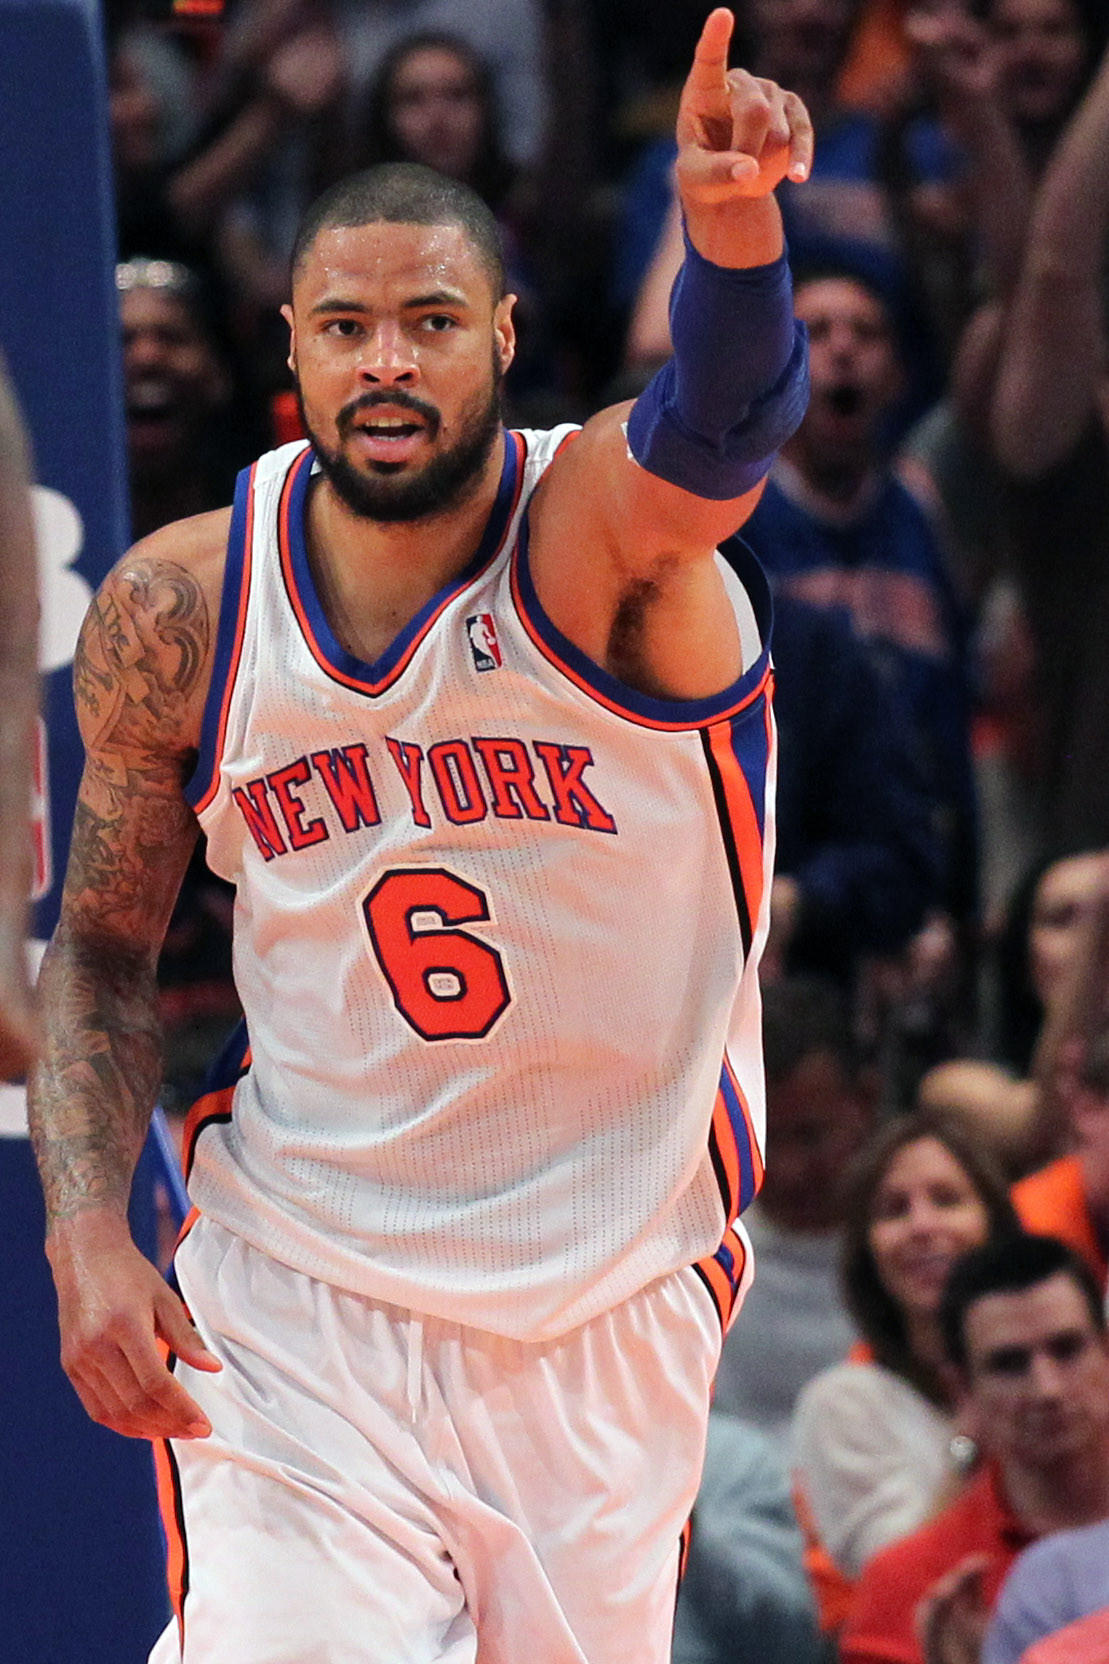 New York Knicks center Tyson Chandler reportedly is headed back to the Dallas Mavericks.